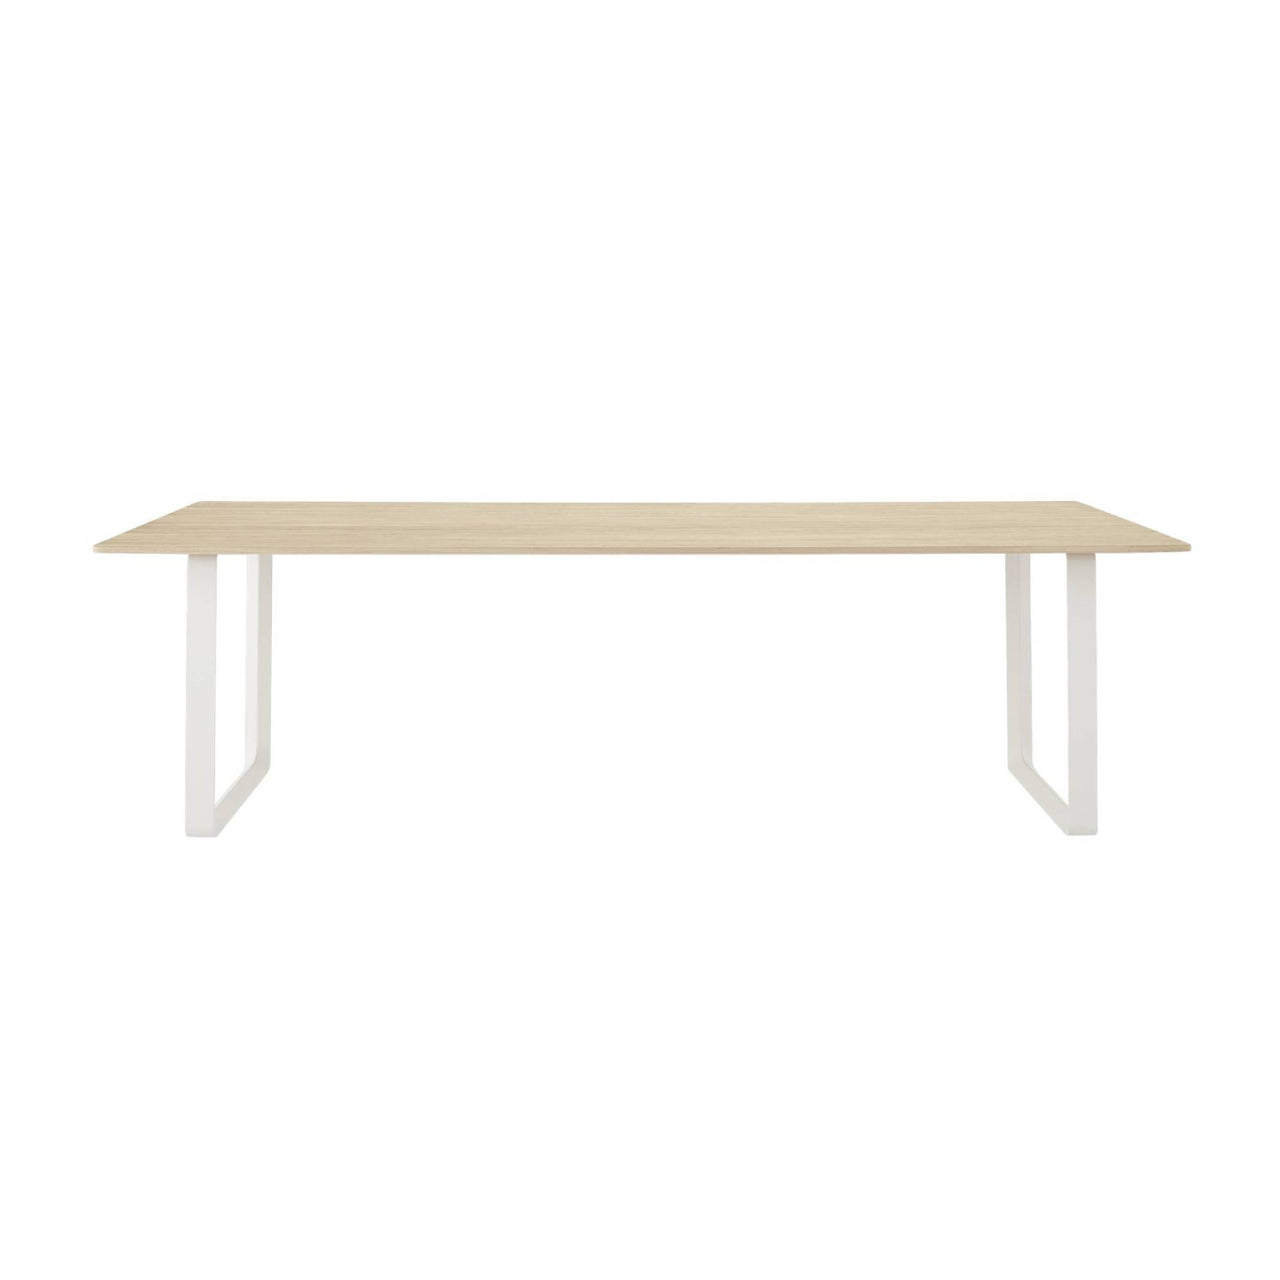 70/70 Table: Solid Oak + Extra Large + White